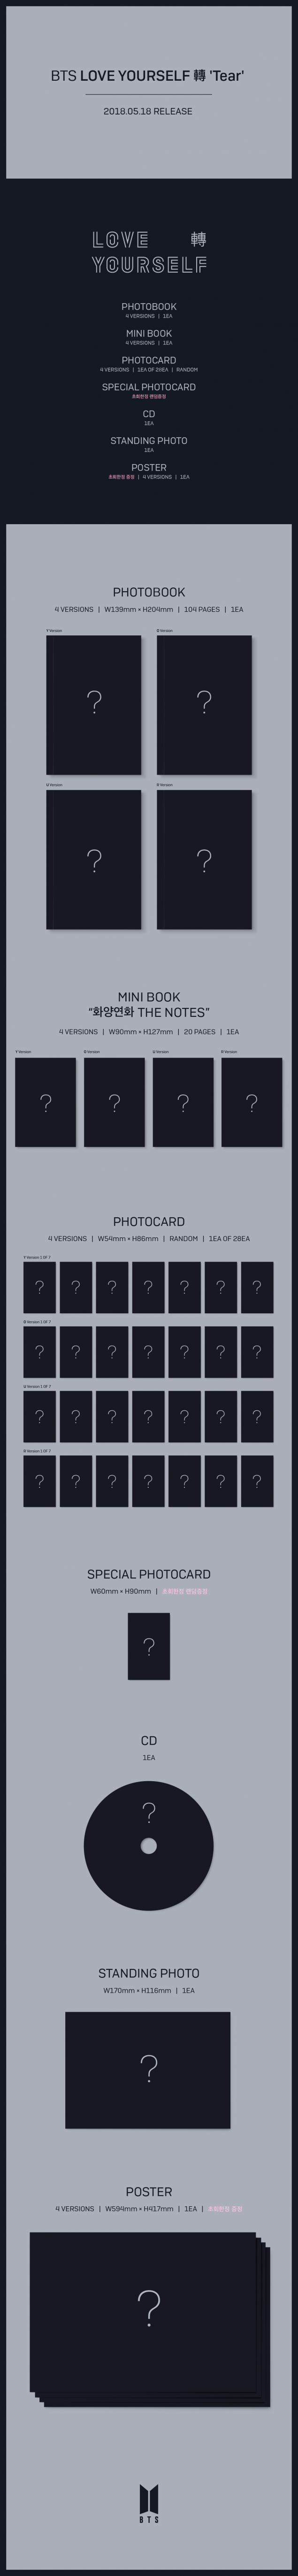 Bts preview details to their 4 version love yourself tear album check it out below and stay tuned for more on bts comeback solutioingenieria Image collections